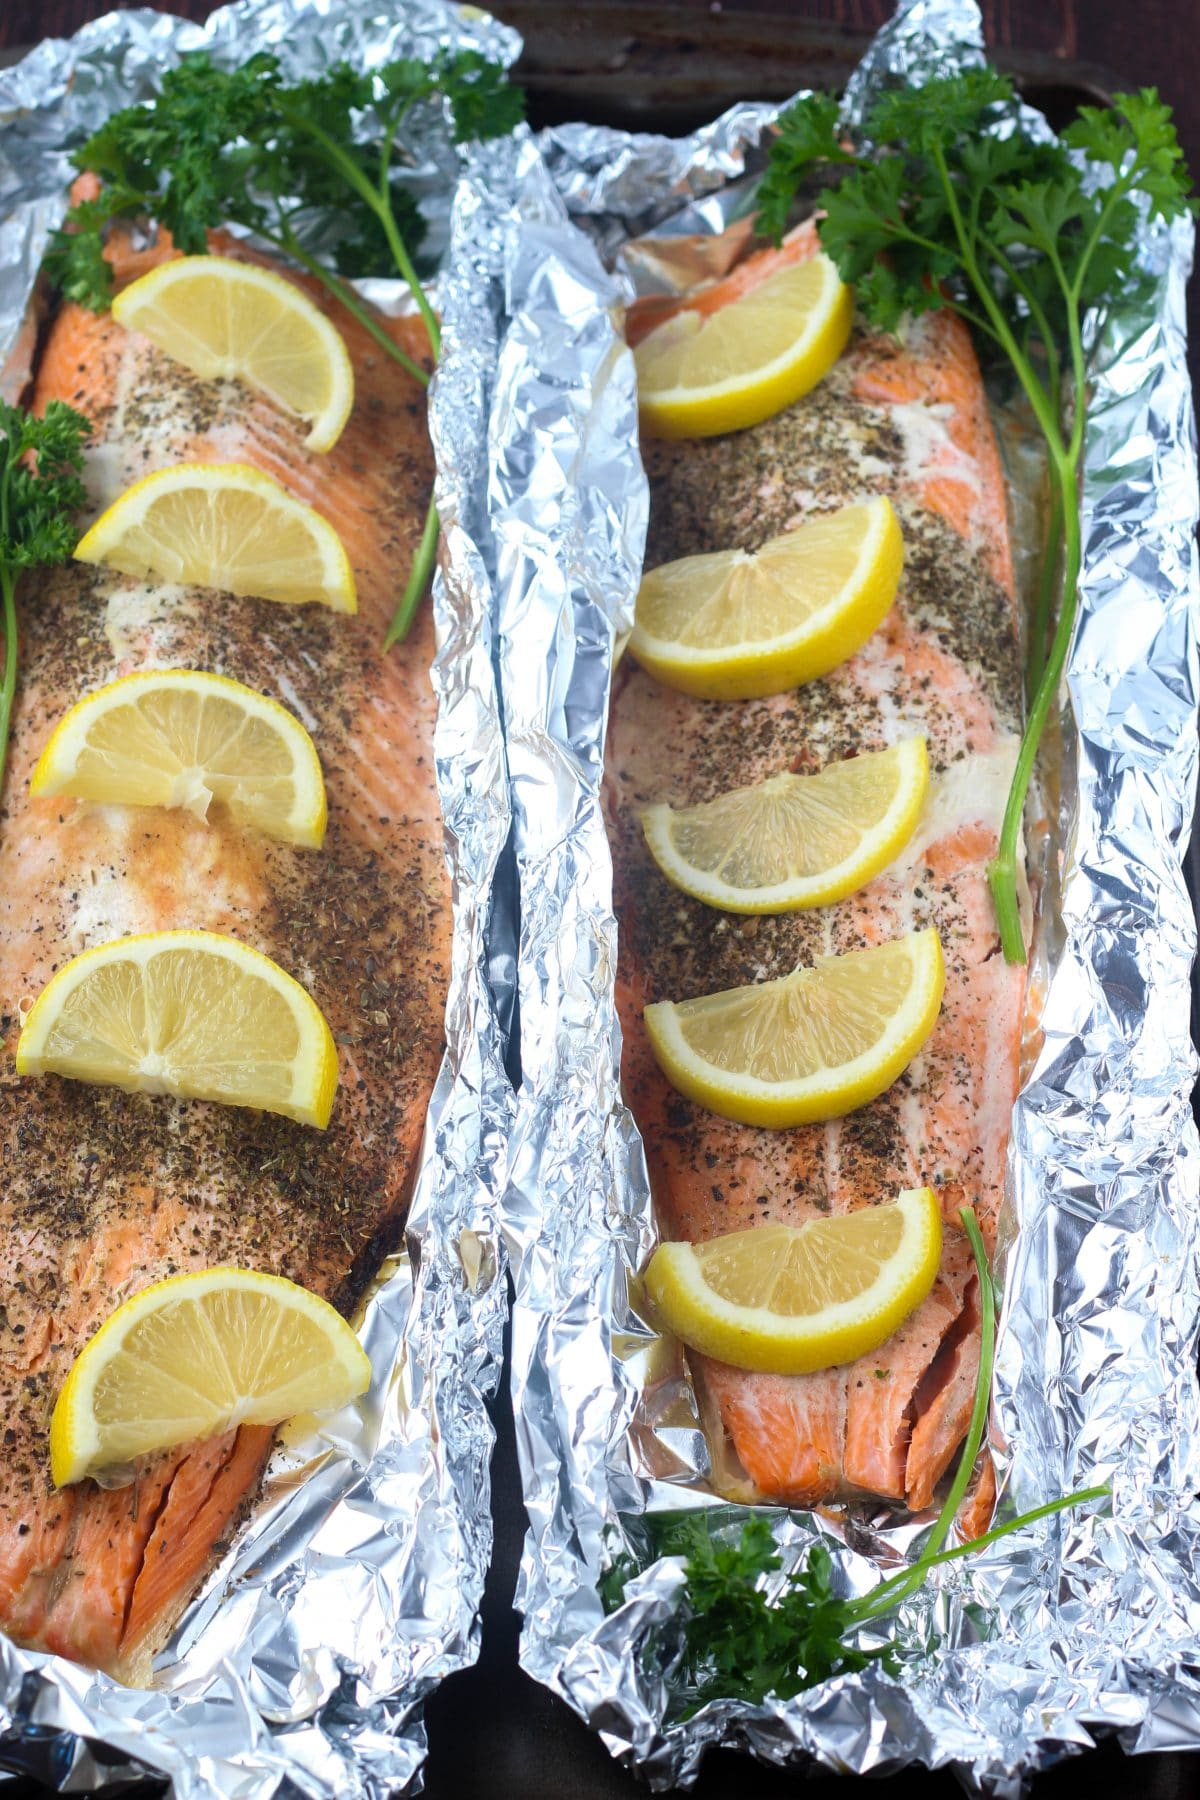 Baked Garlic Dill Salmon with Lemon Herb Butter